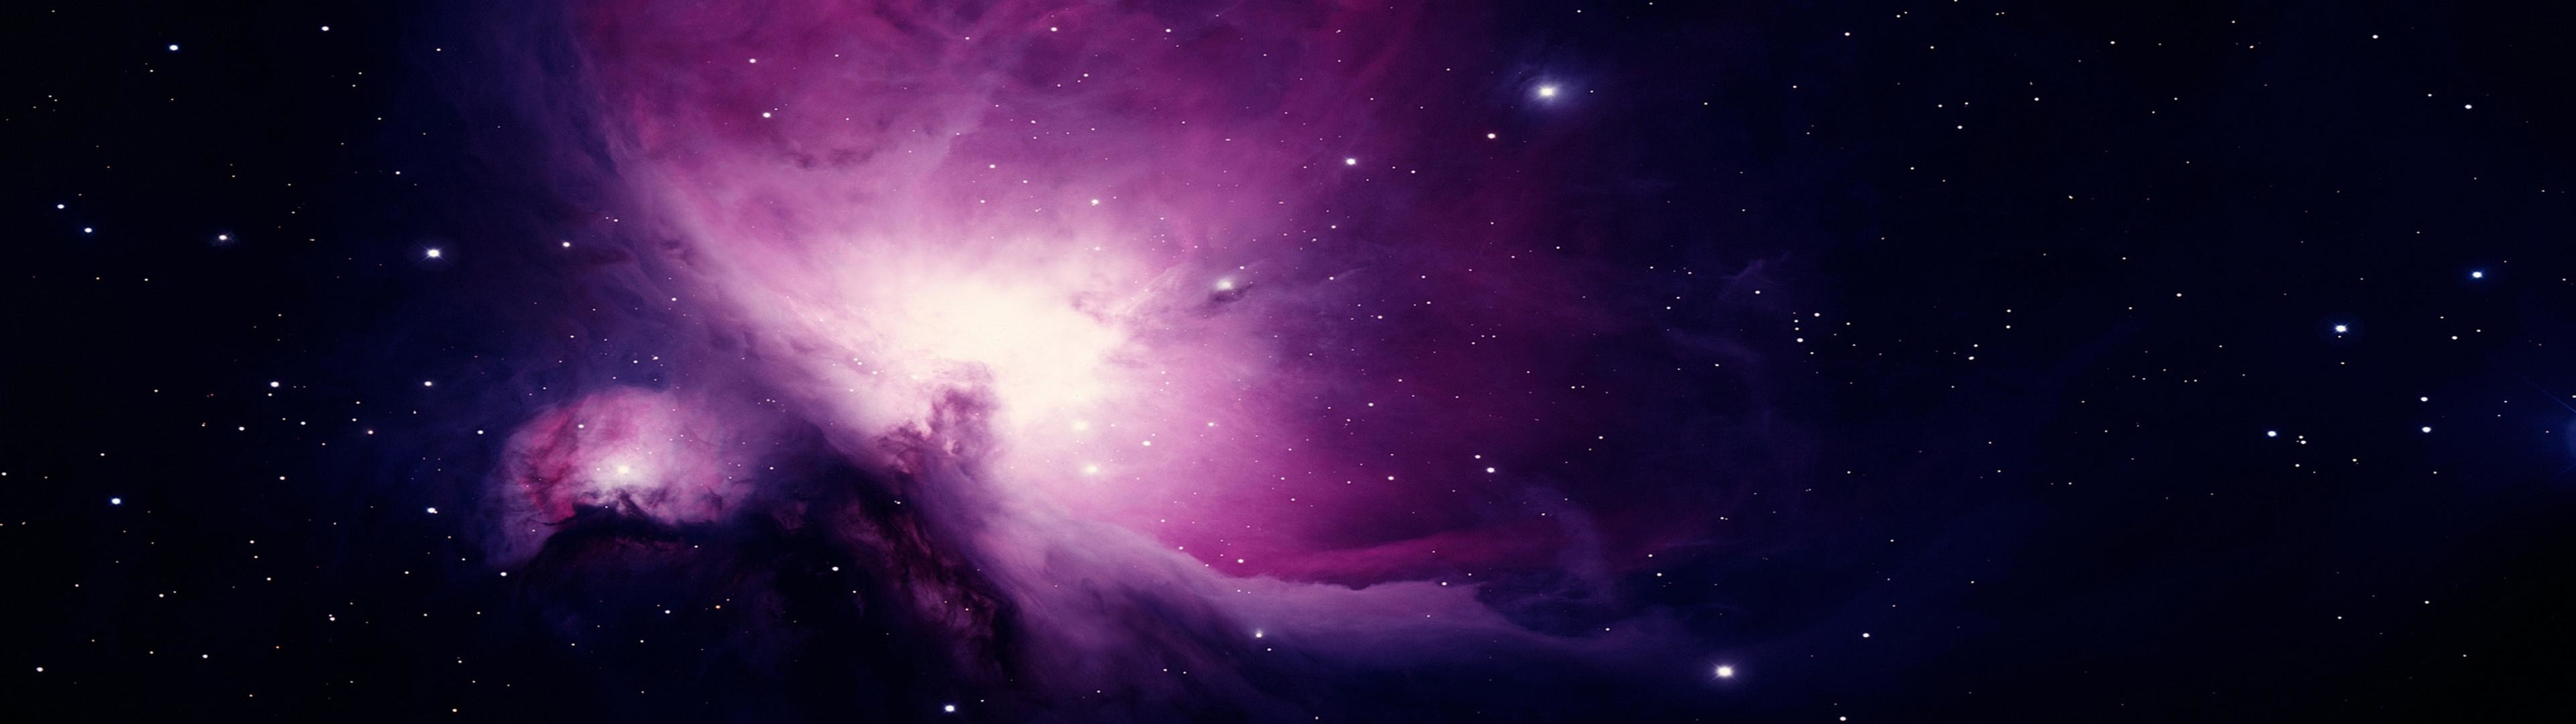 3840x1080 wallpaper space 74 images - Dual monitor space wallpaper ...